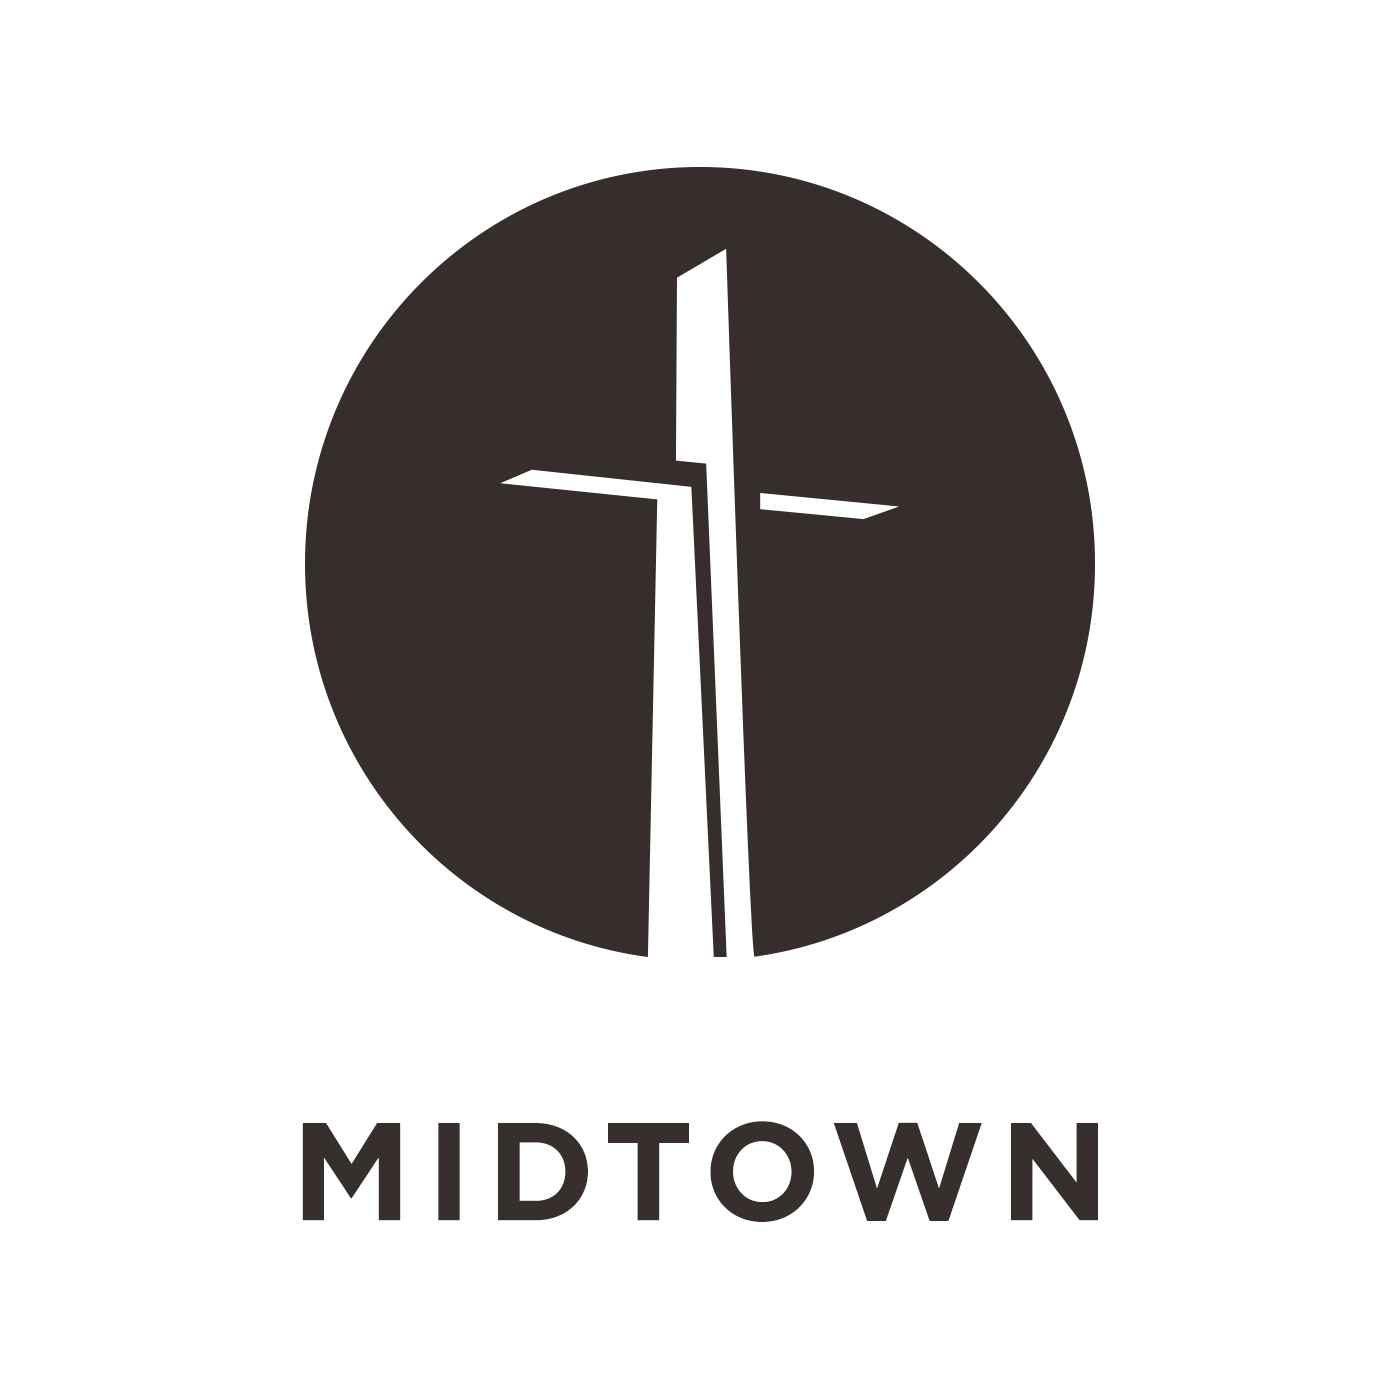 Our Savior's Church - Midtown